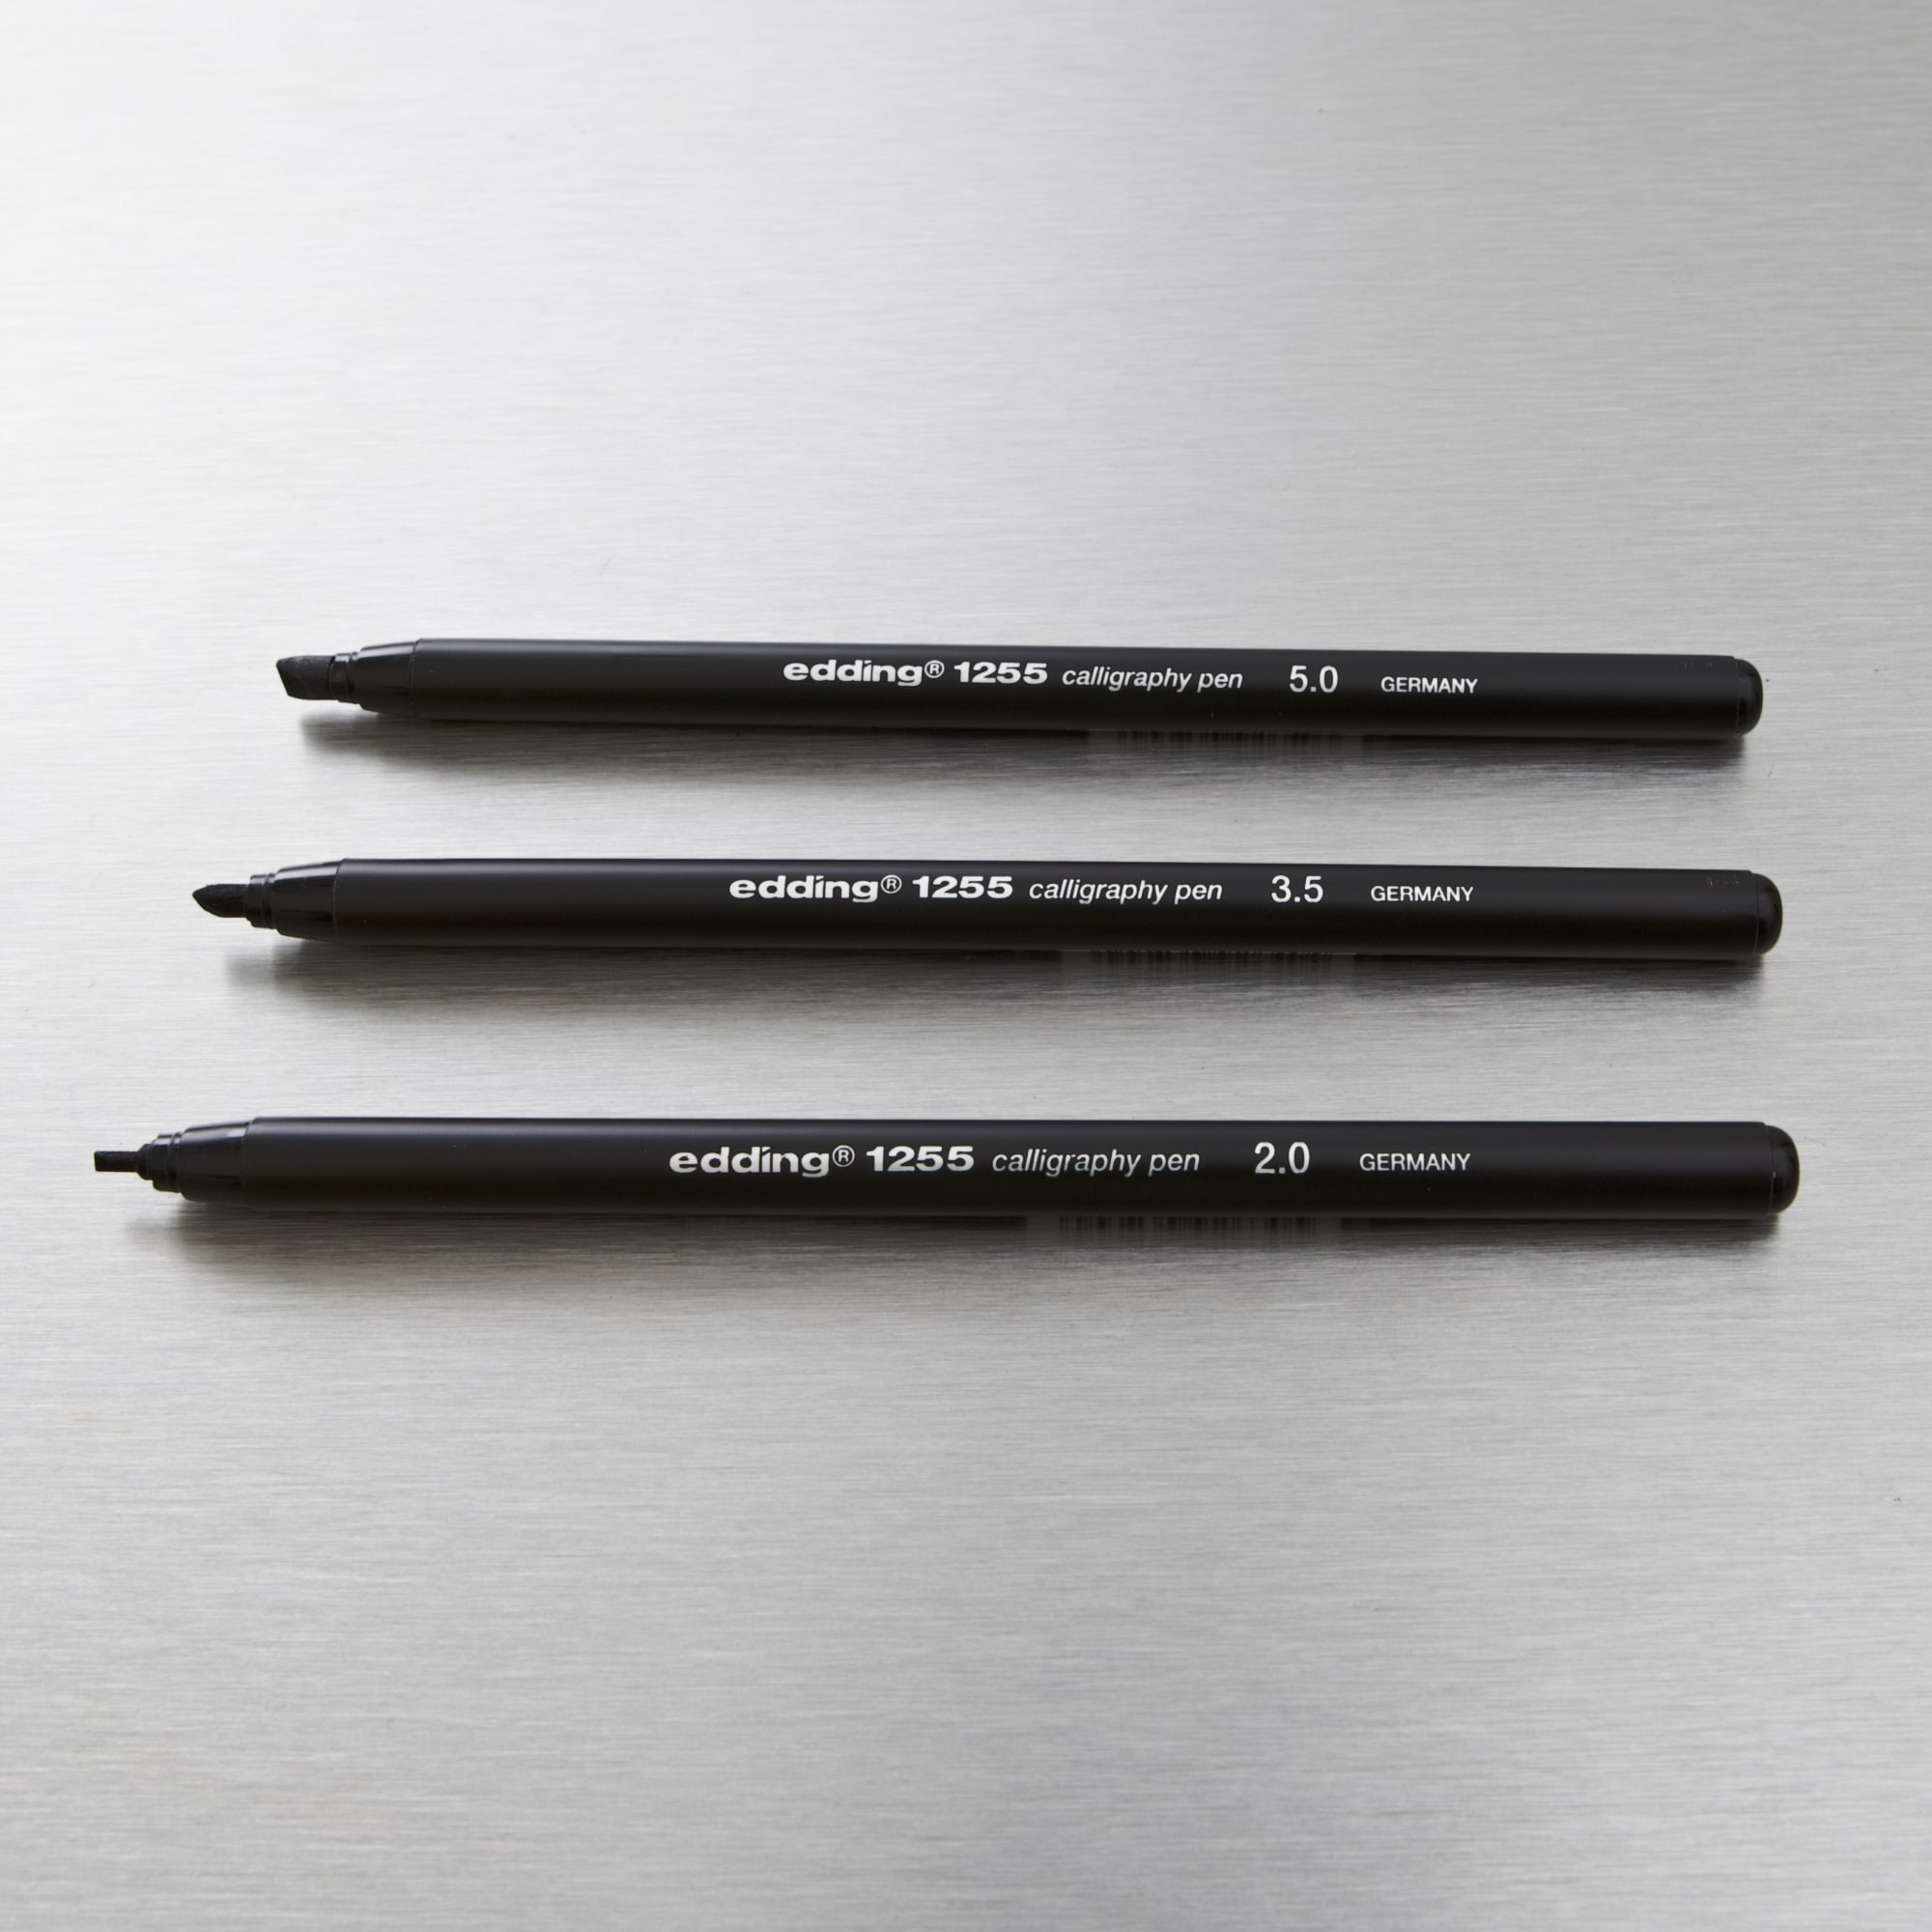 Edding calligraphy pen set of 3 calligraphy pens Drawing with calligraphy pens